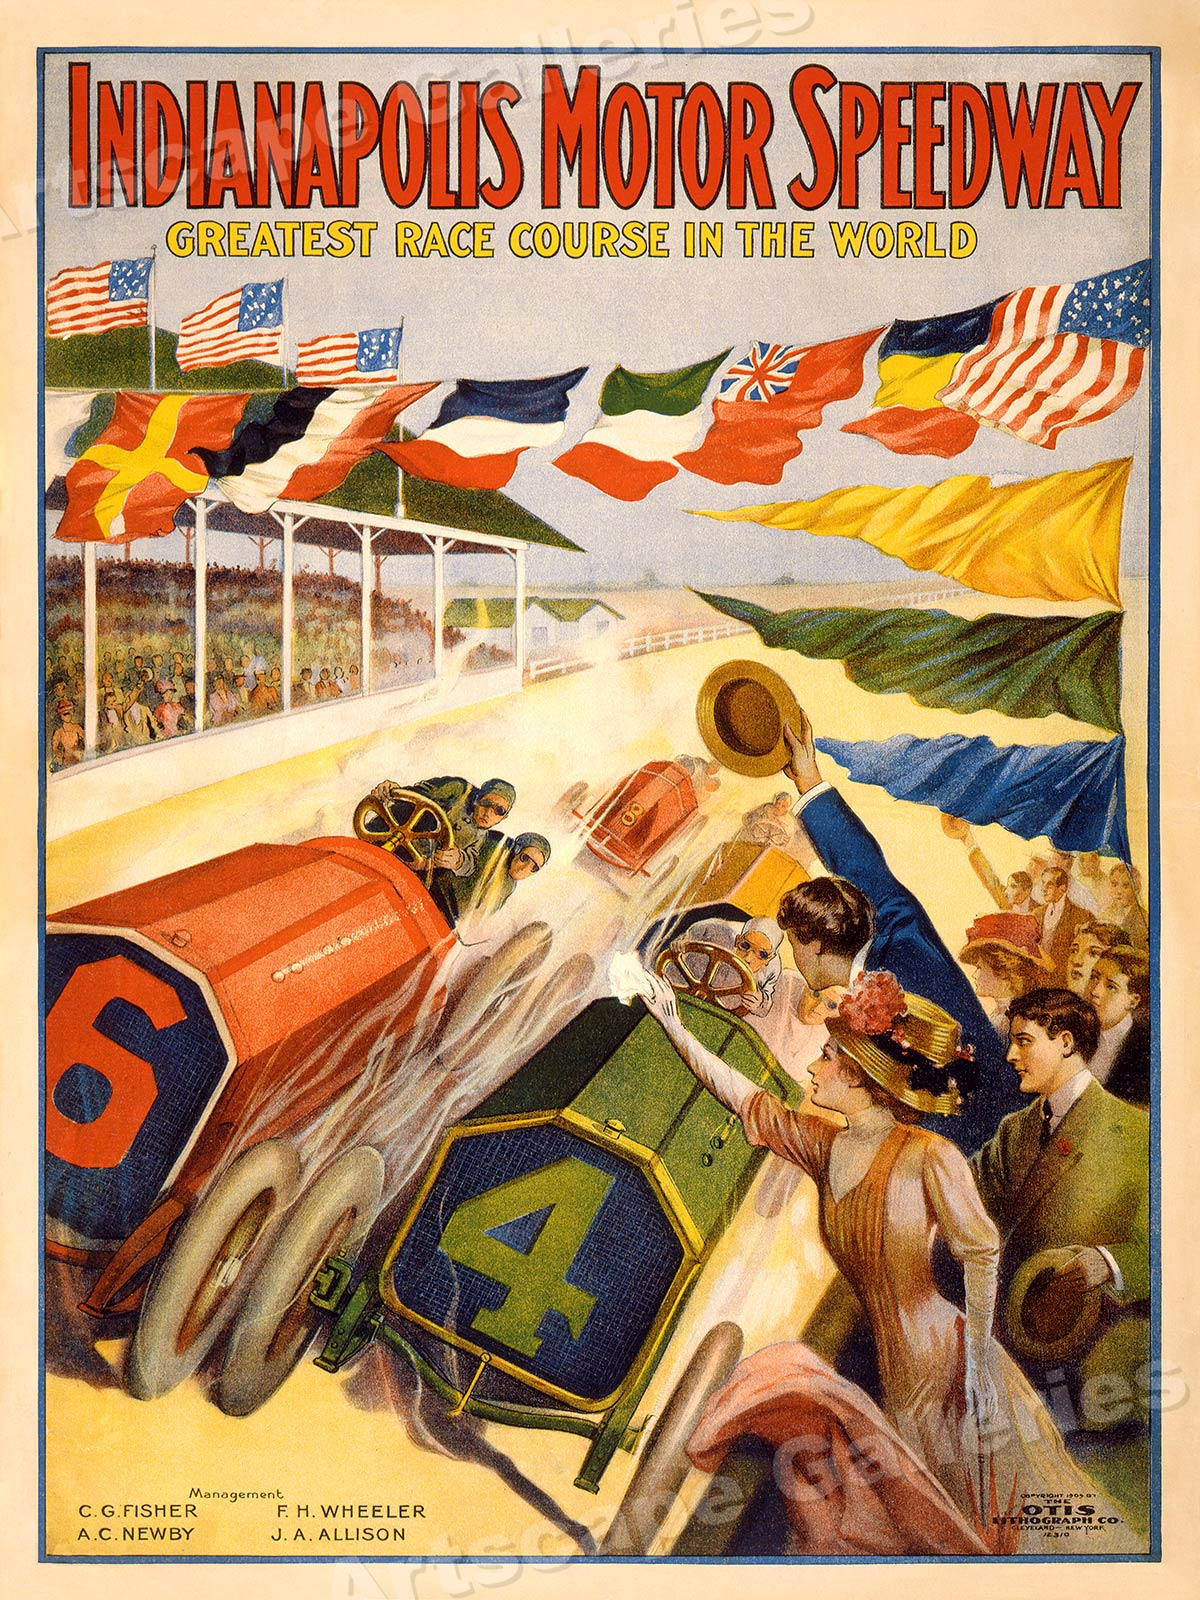 1909 Indianapolis Motor Speedway Dirt Track Racing Poster